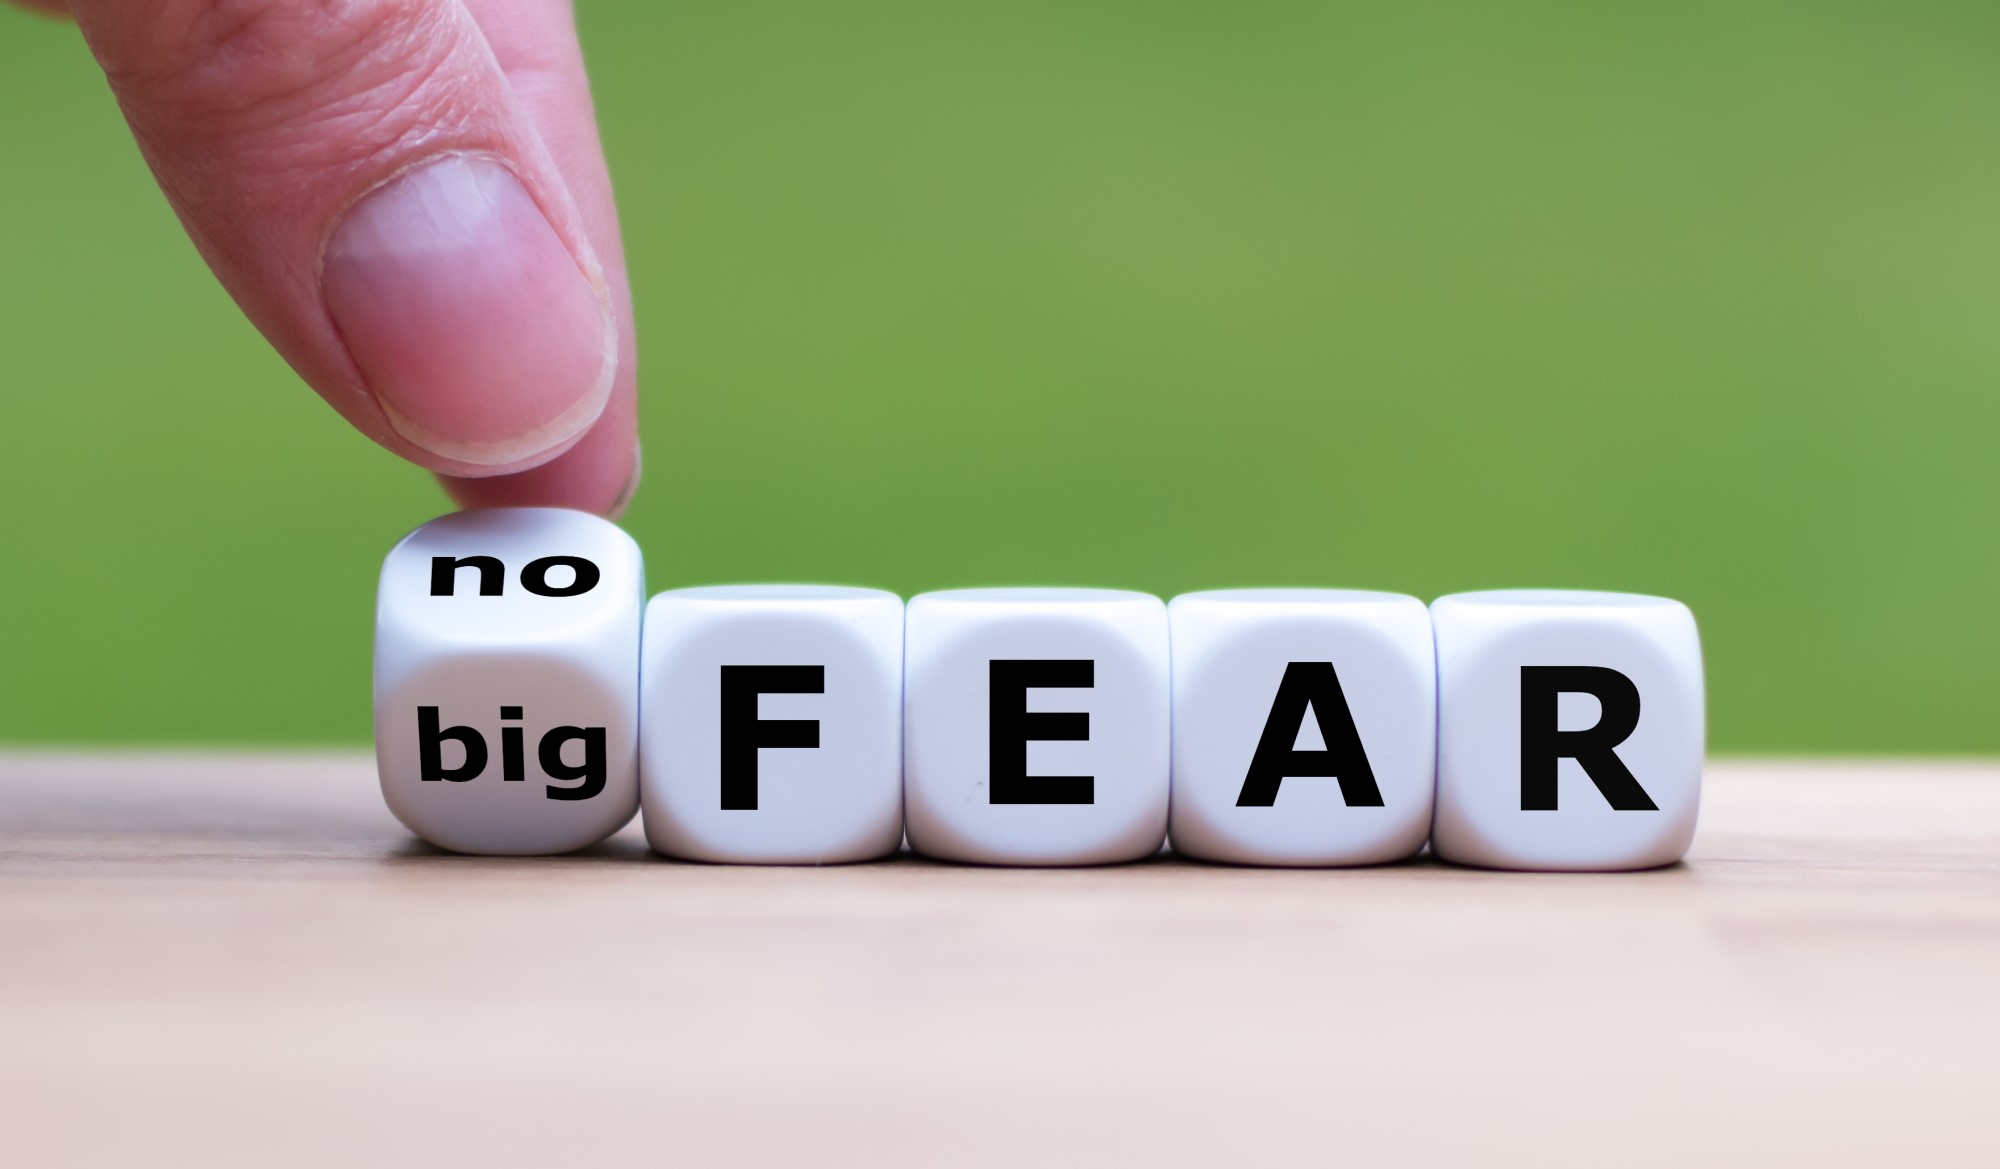 Let's kick career fear to the curb together